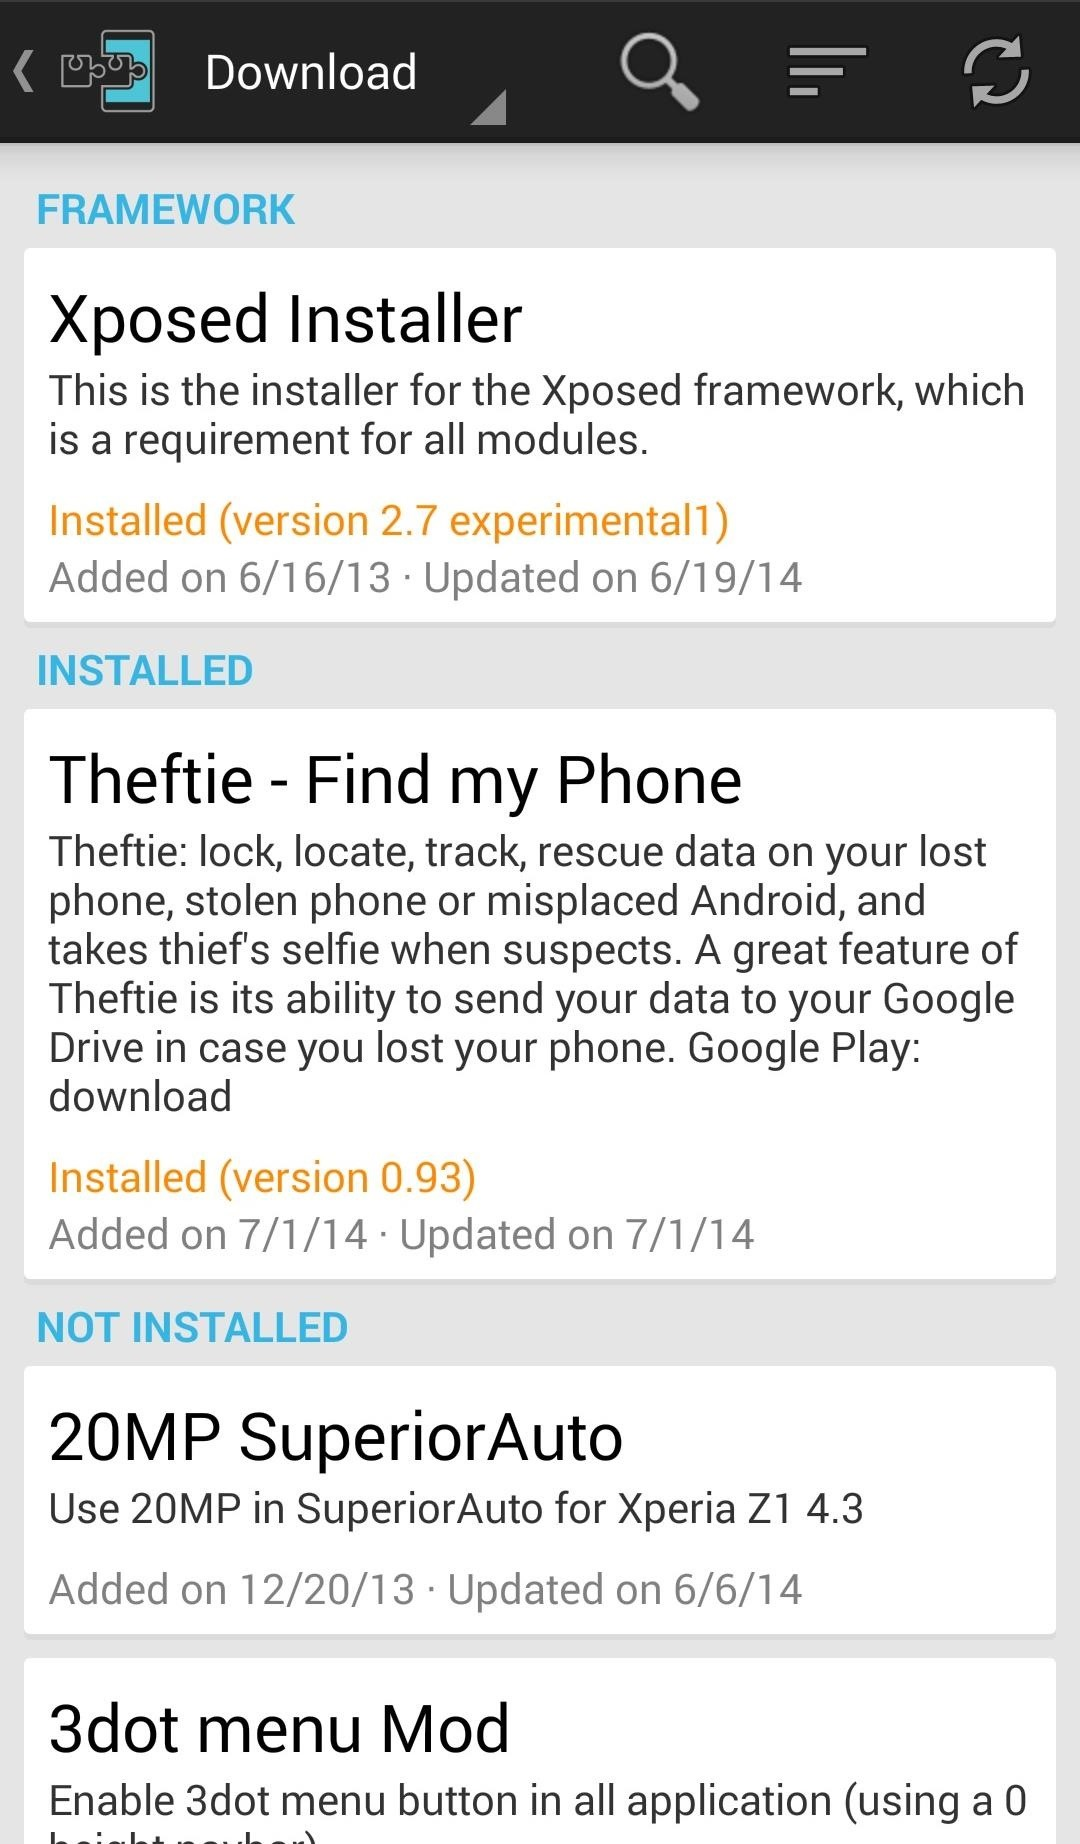 How to Find Your Missing Android Phone, Wipe It Clean, Disable USB, Capture Thief Selfies, & More